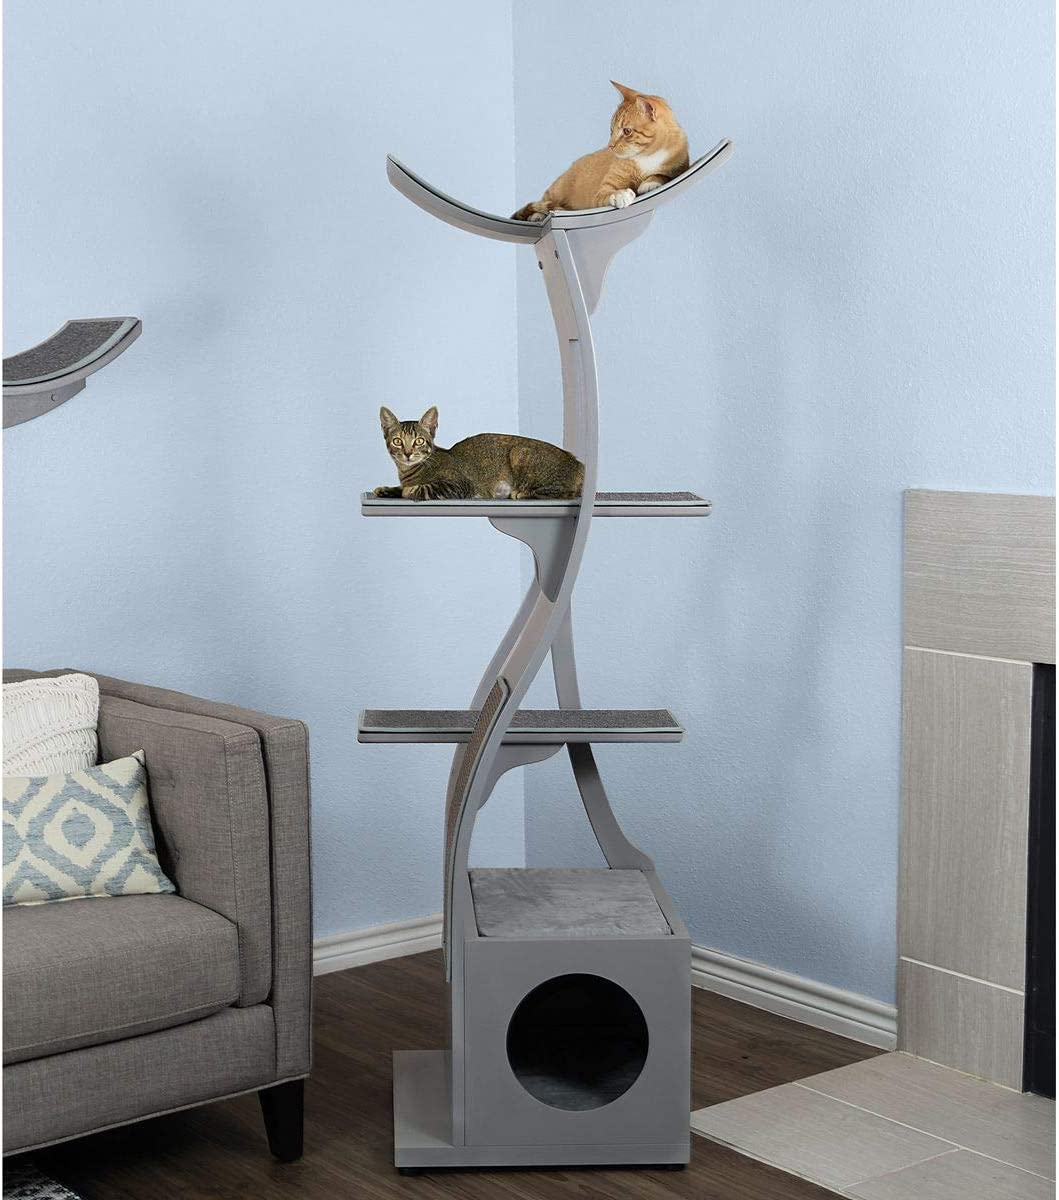 THE REFINED FELINE Lotus Cat Tower Furniture, Multi-Level Cat Tree with Scratching Pad, Perches, House to Climb, Play, Relax for Kitty